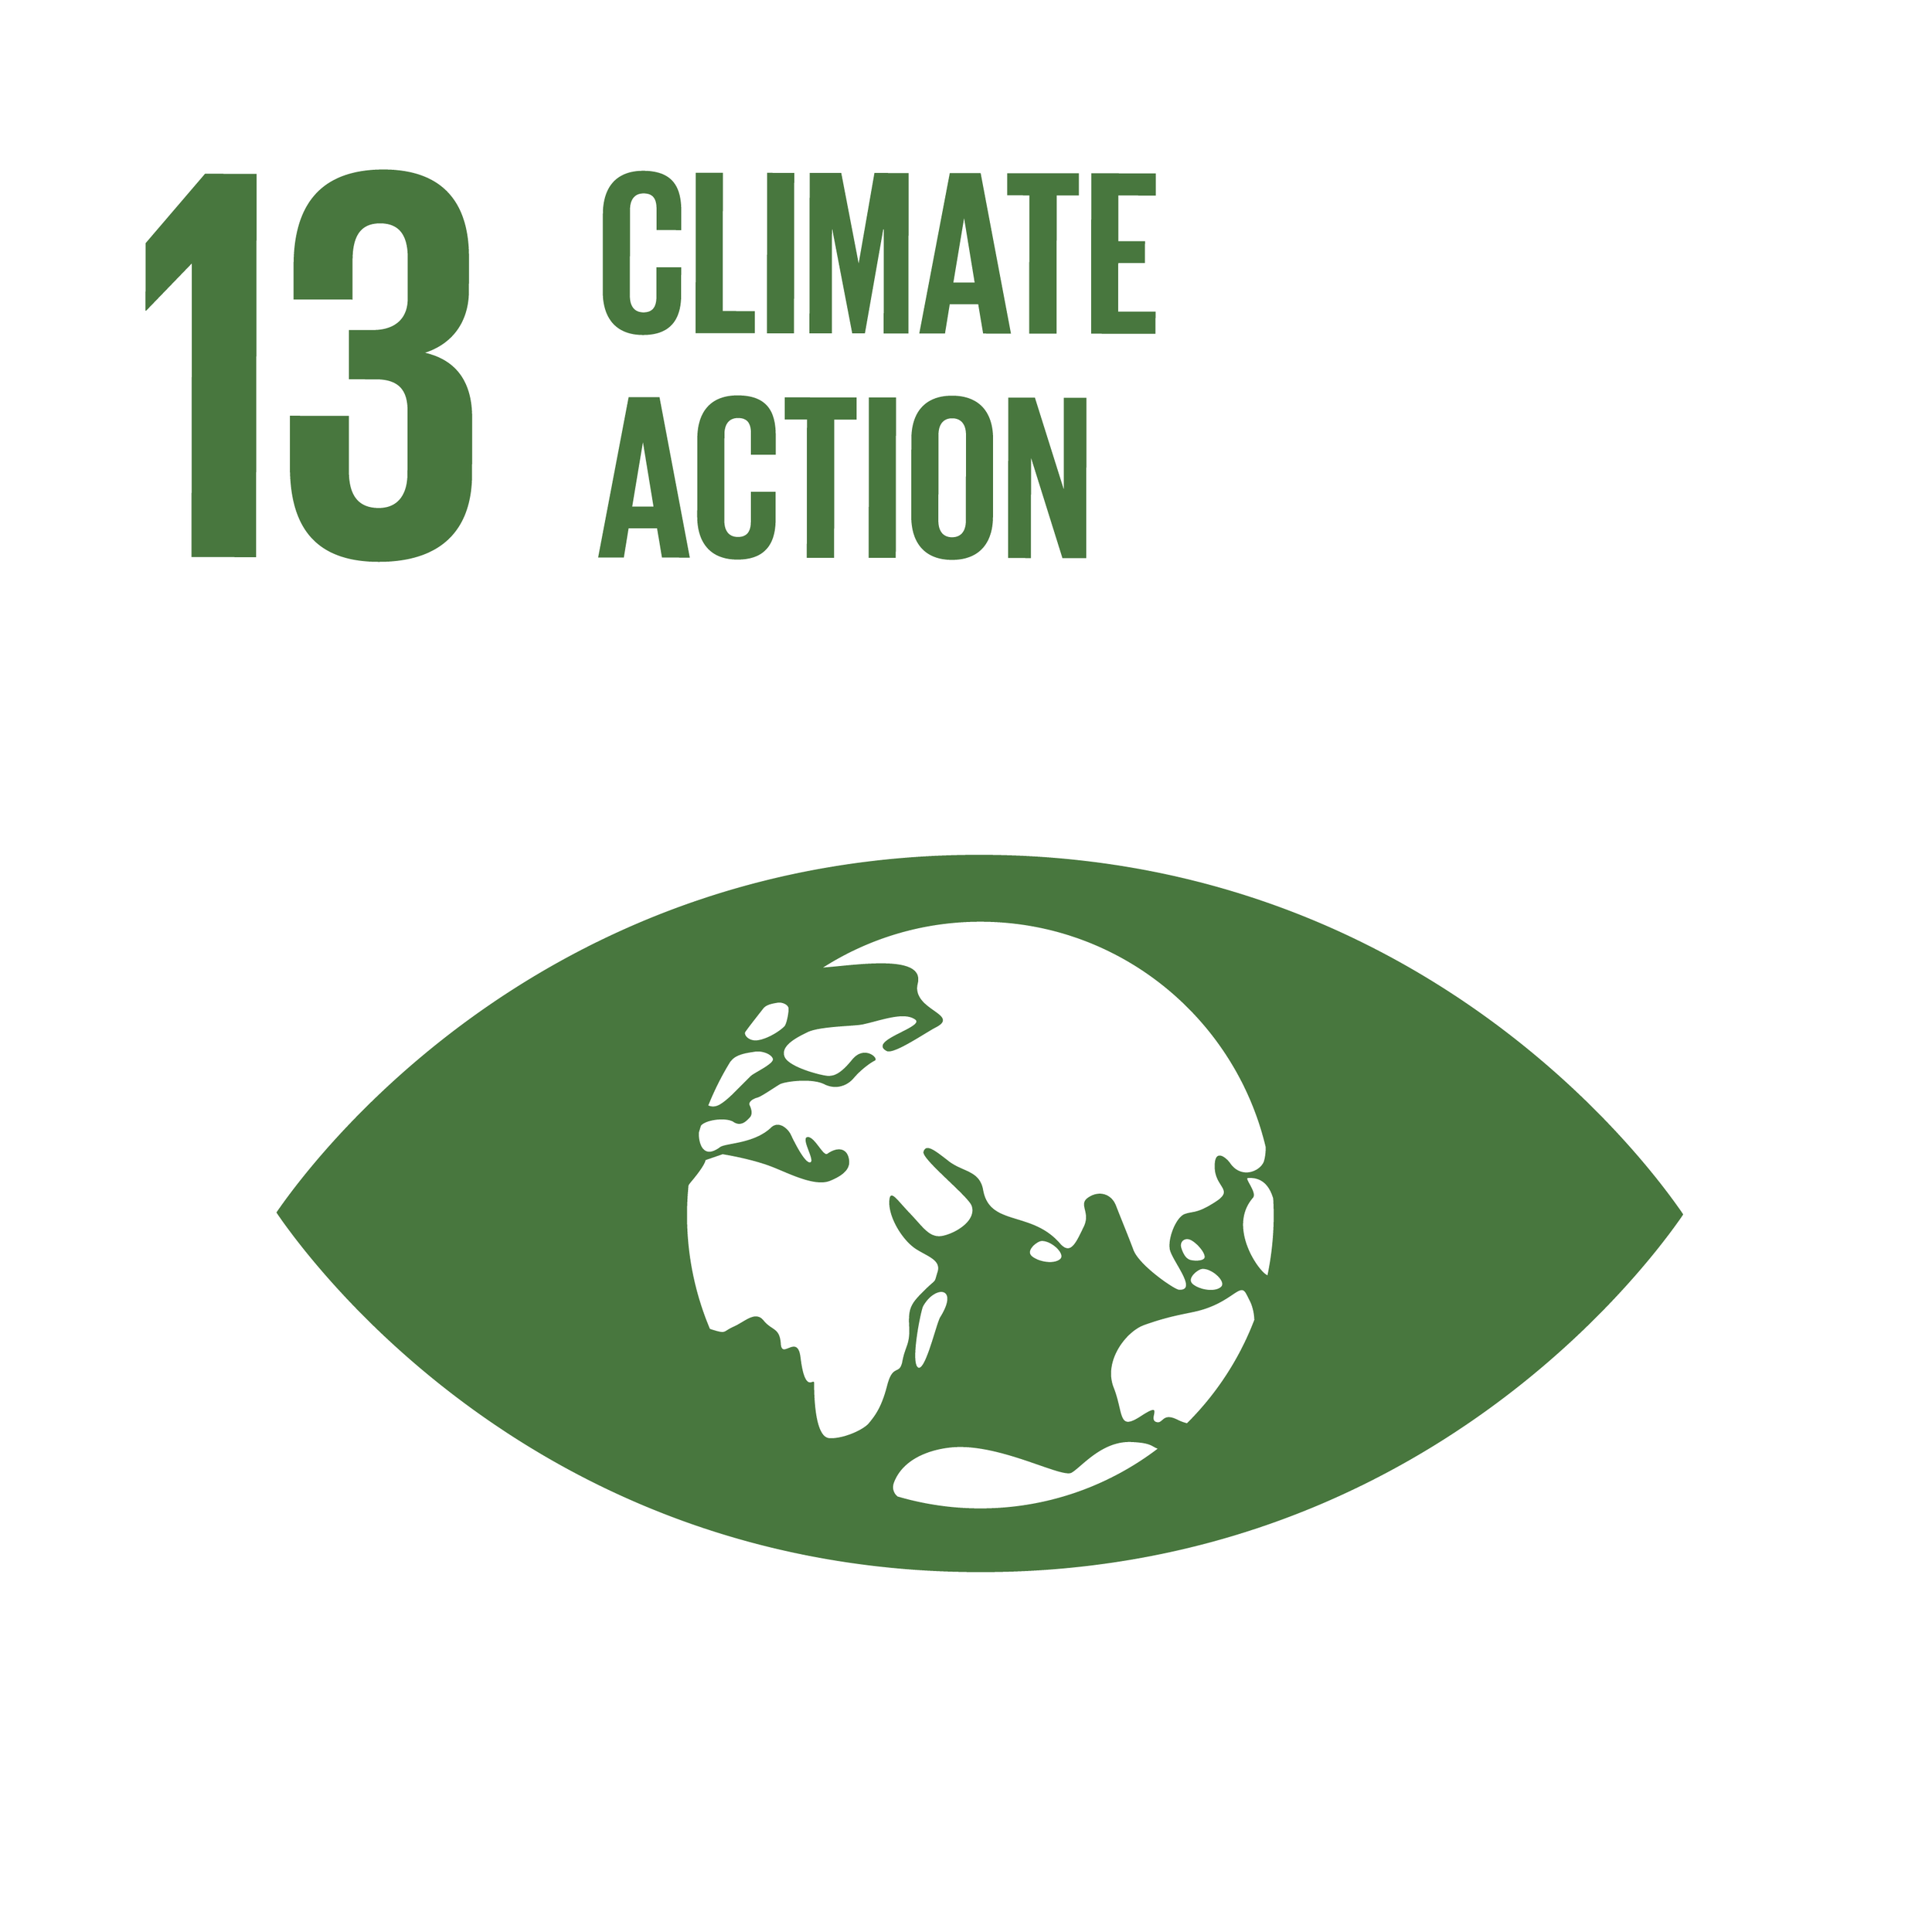 E_INVERTED SDG goals_icons-individual-RGB-13.png